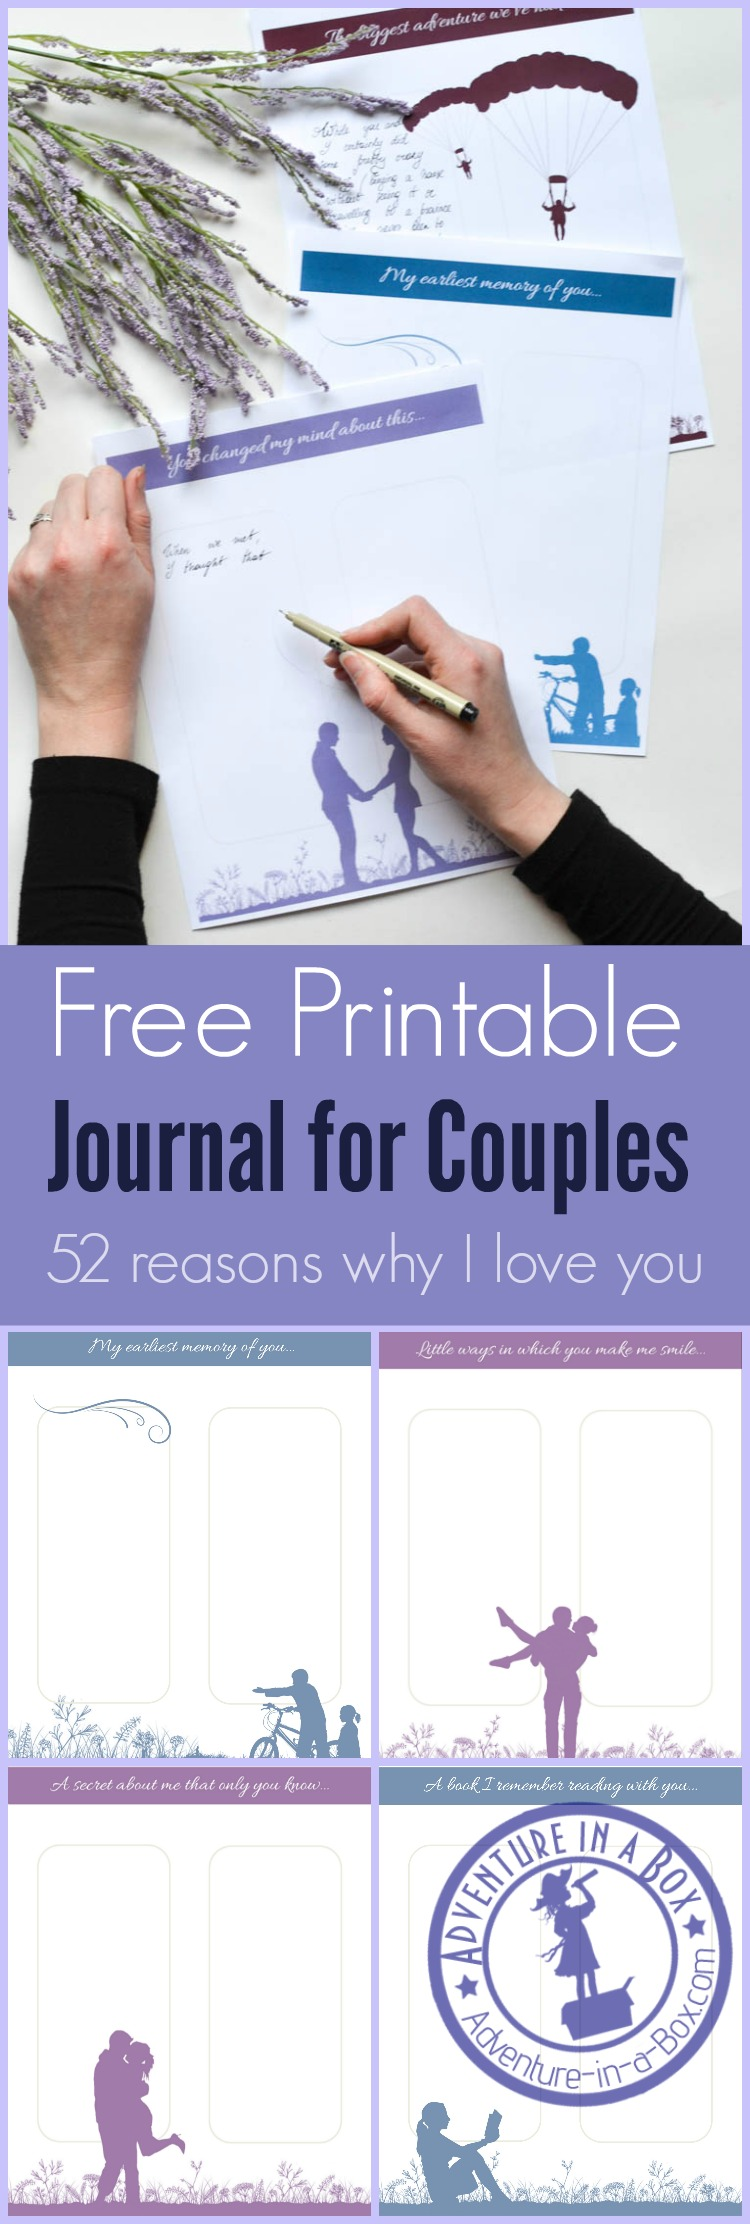 52 reasons why i love you free printable q a journal for for 52 reasons why i love you cards templates free